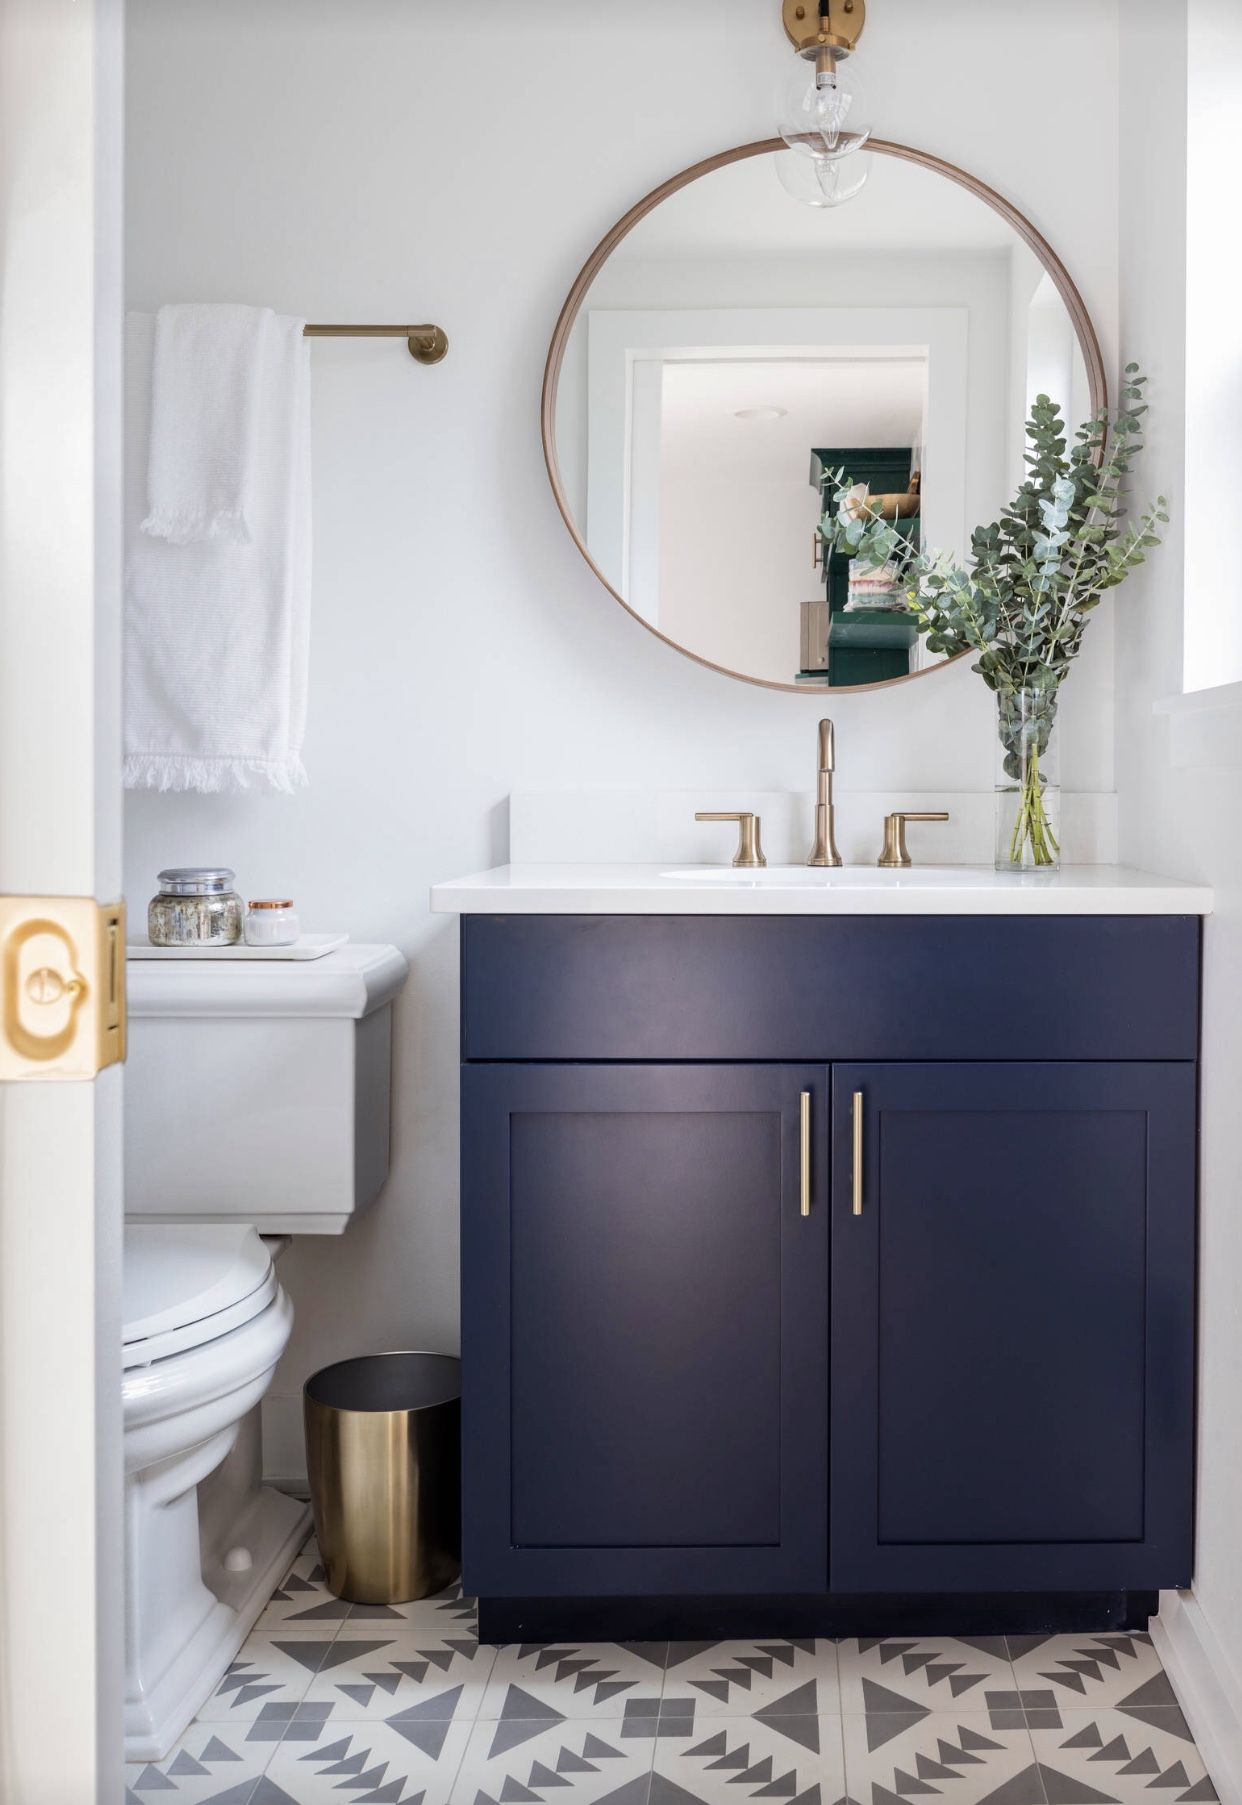 SMALL BATHROOM DESIGN IDEAS - THE LIFESTYLE LOFT